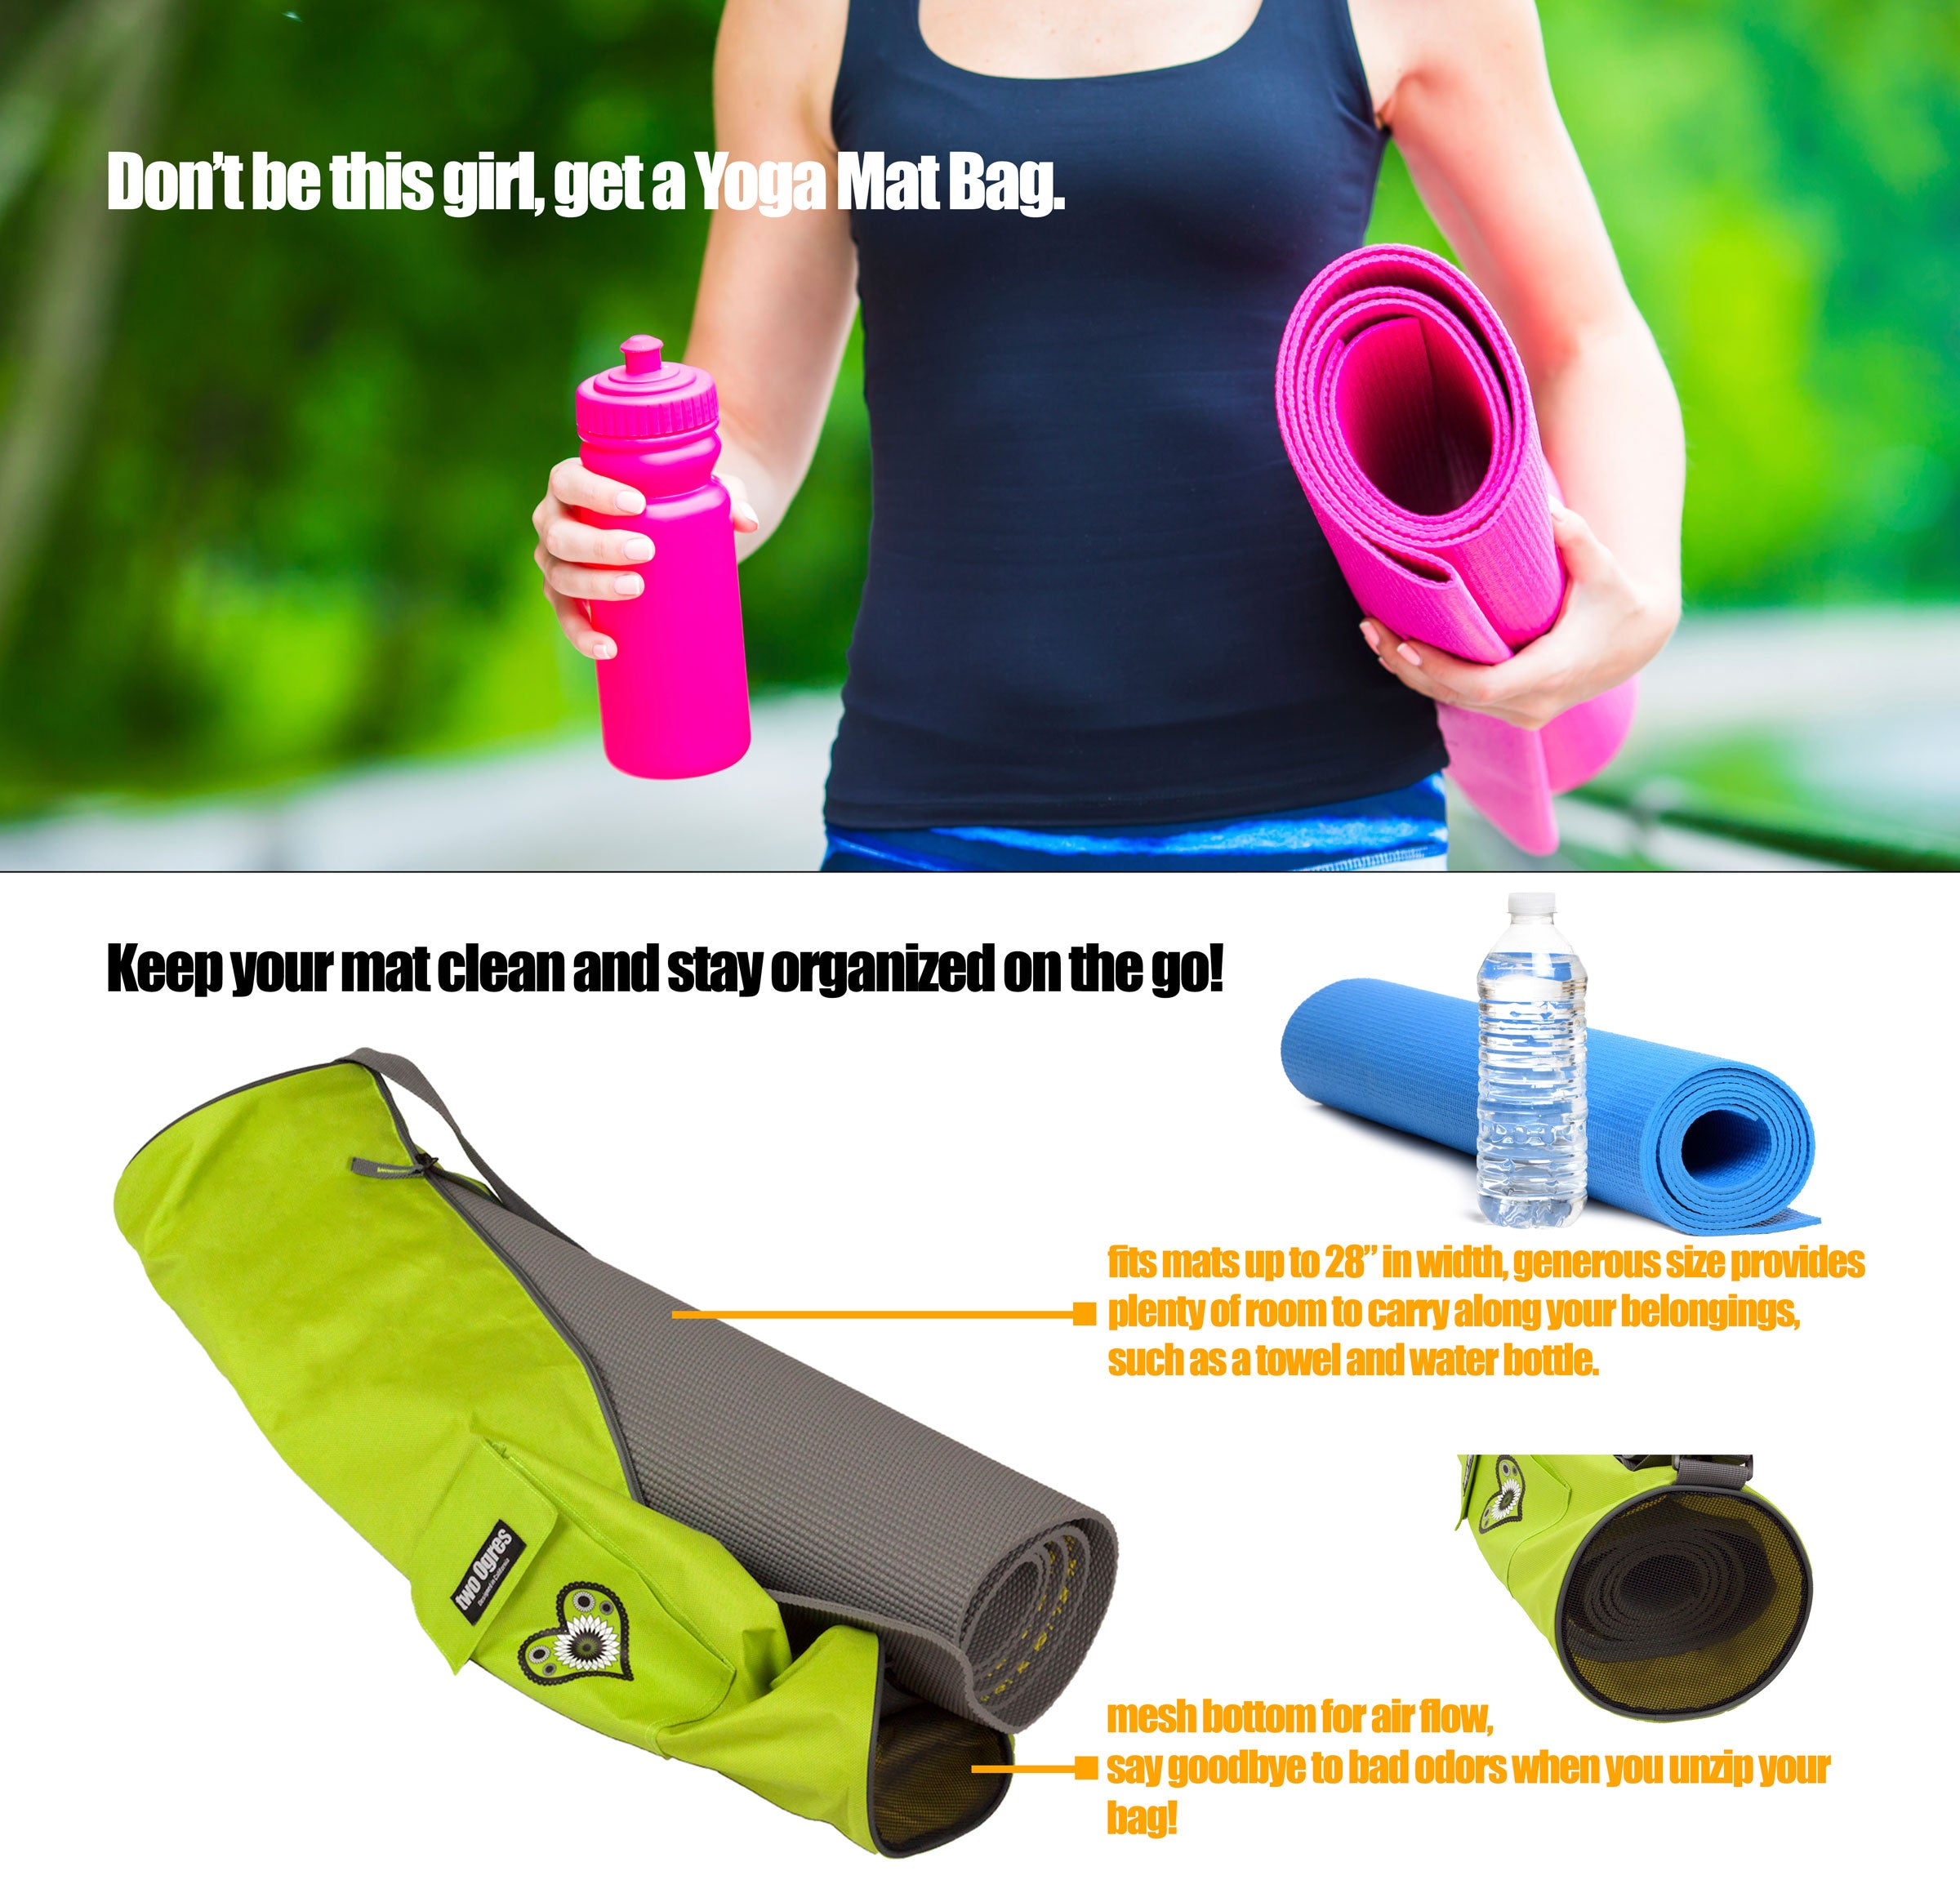 Get a Yoga Mat Bag!